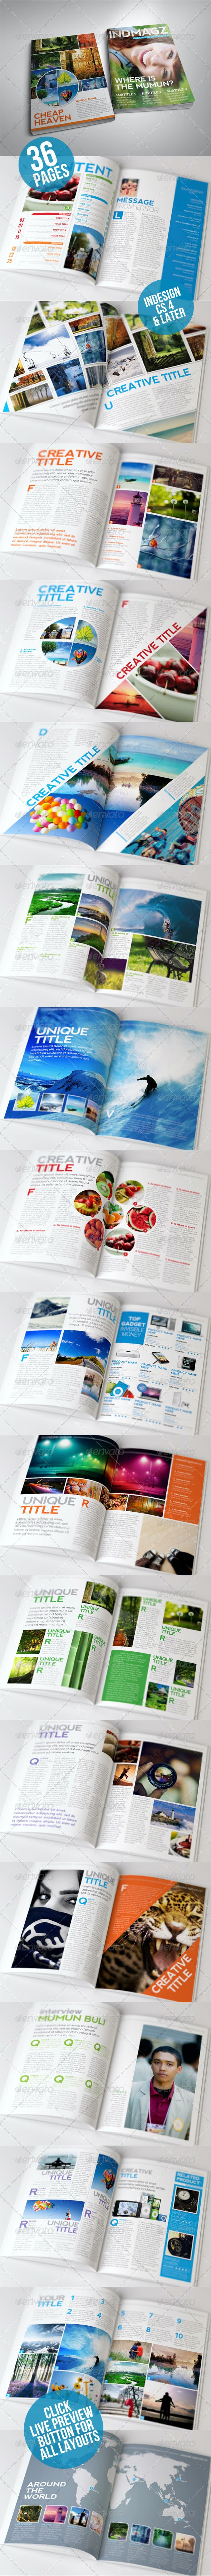 36 Pages Modern & Clean Magazine Templates Vol. 2  - Magazines Print Templates